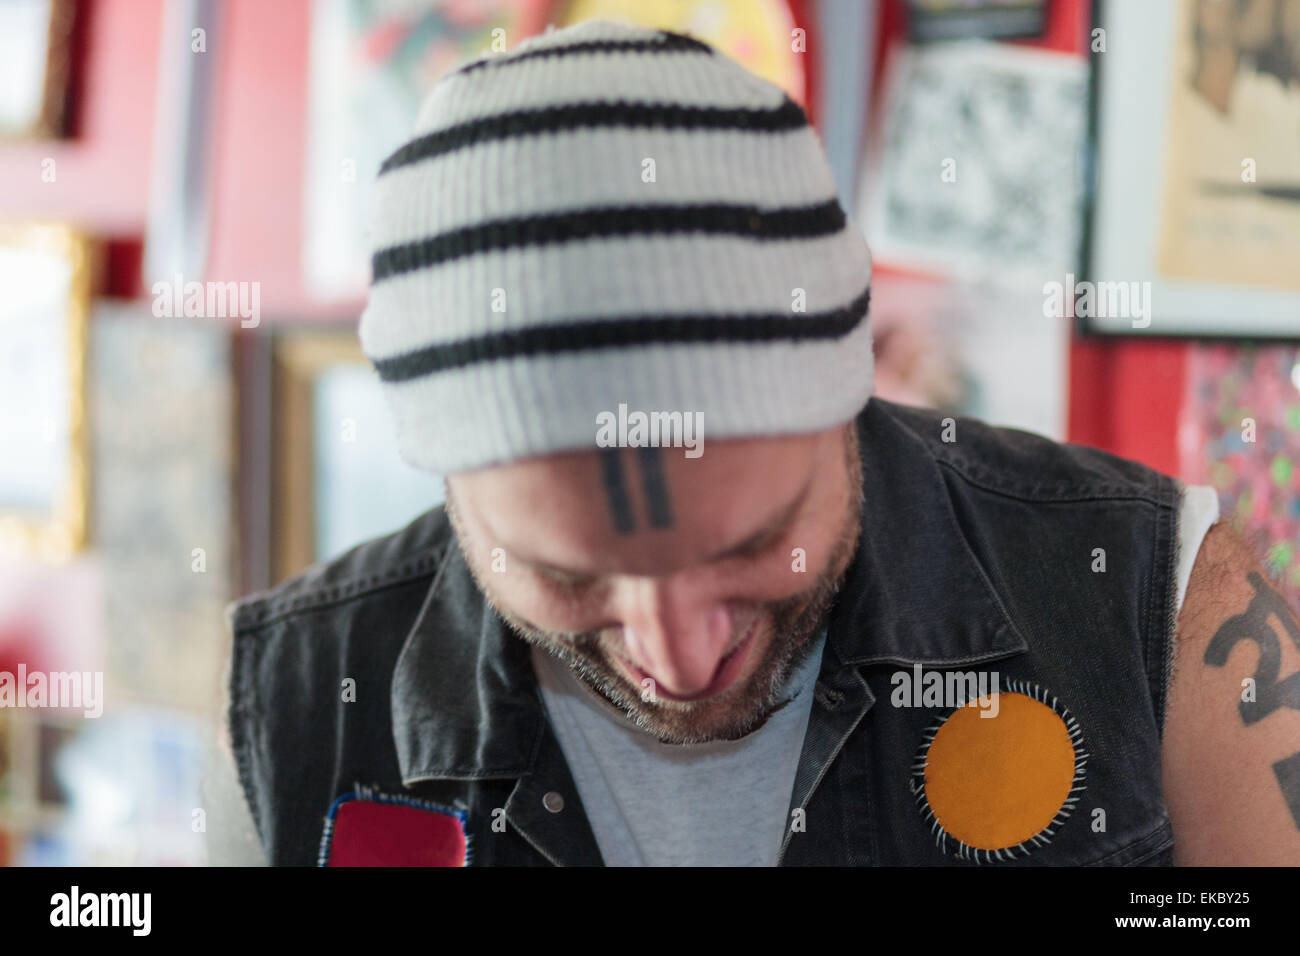 Close up of male punk shop keeper smiling and looking down in vintage toy shop - Stock Image